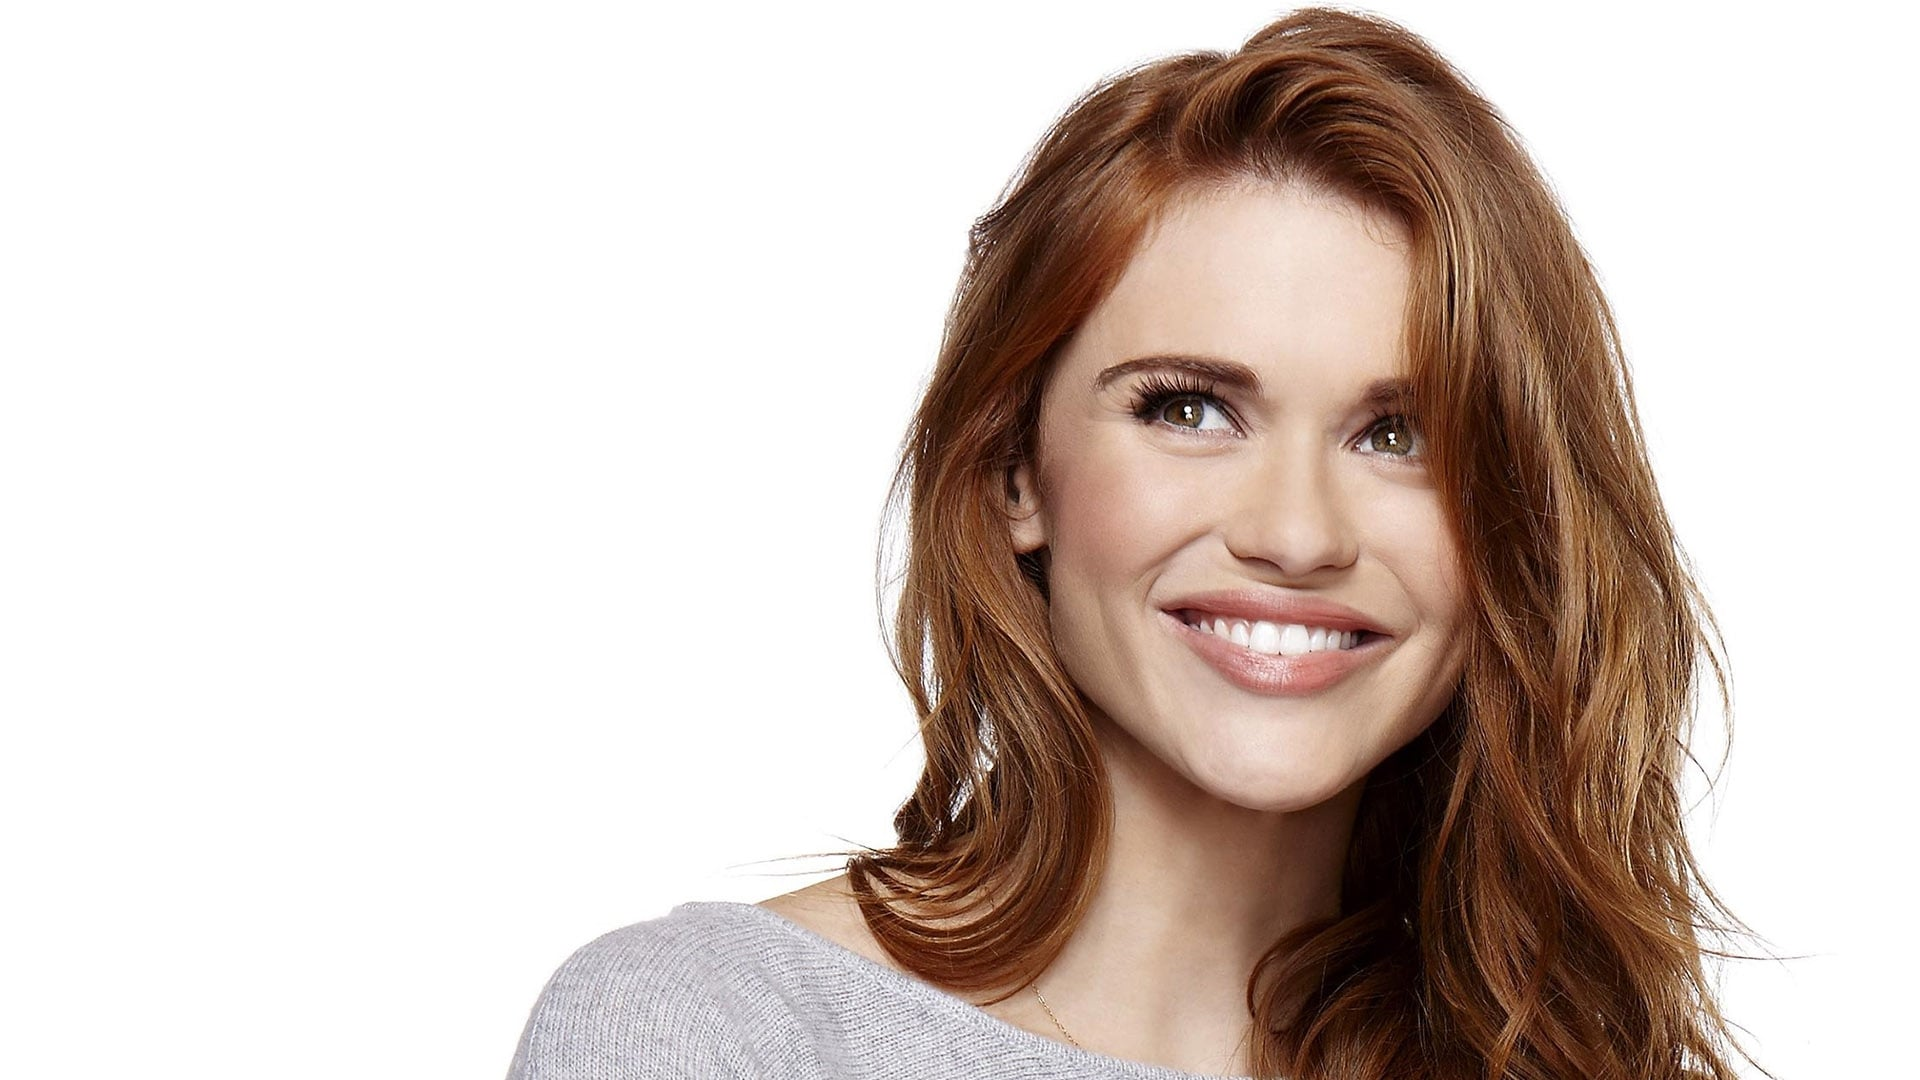 smile Holland Roden widescreen wallpaper